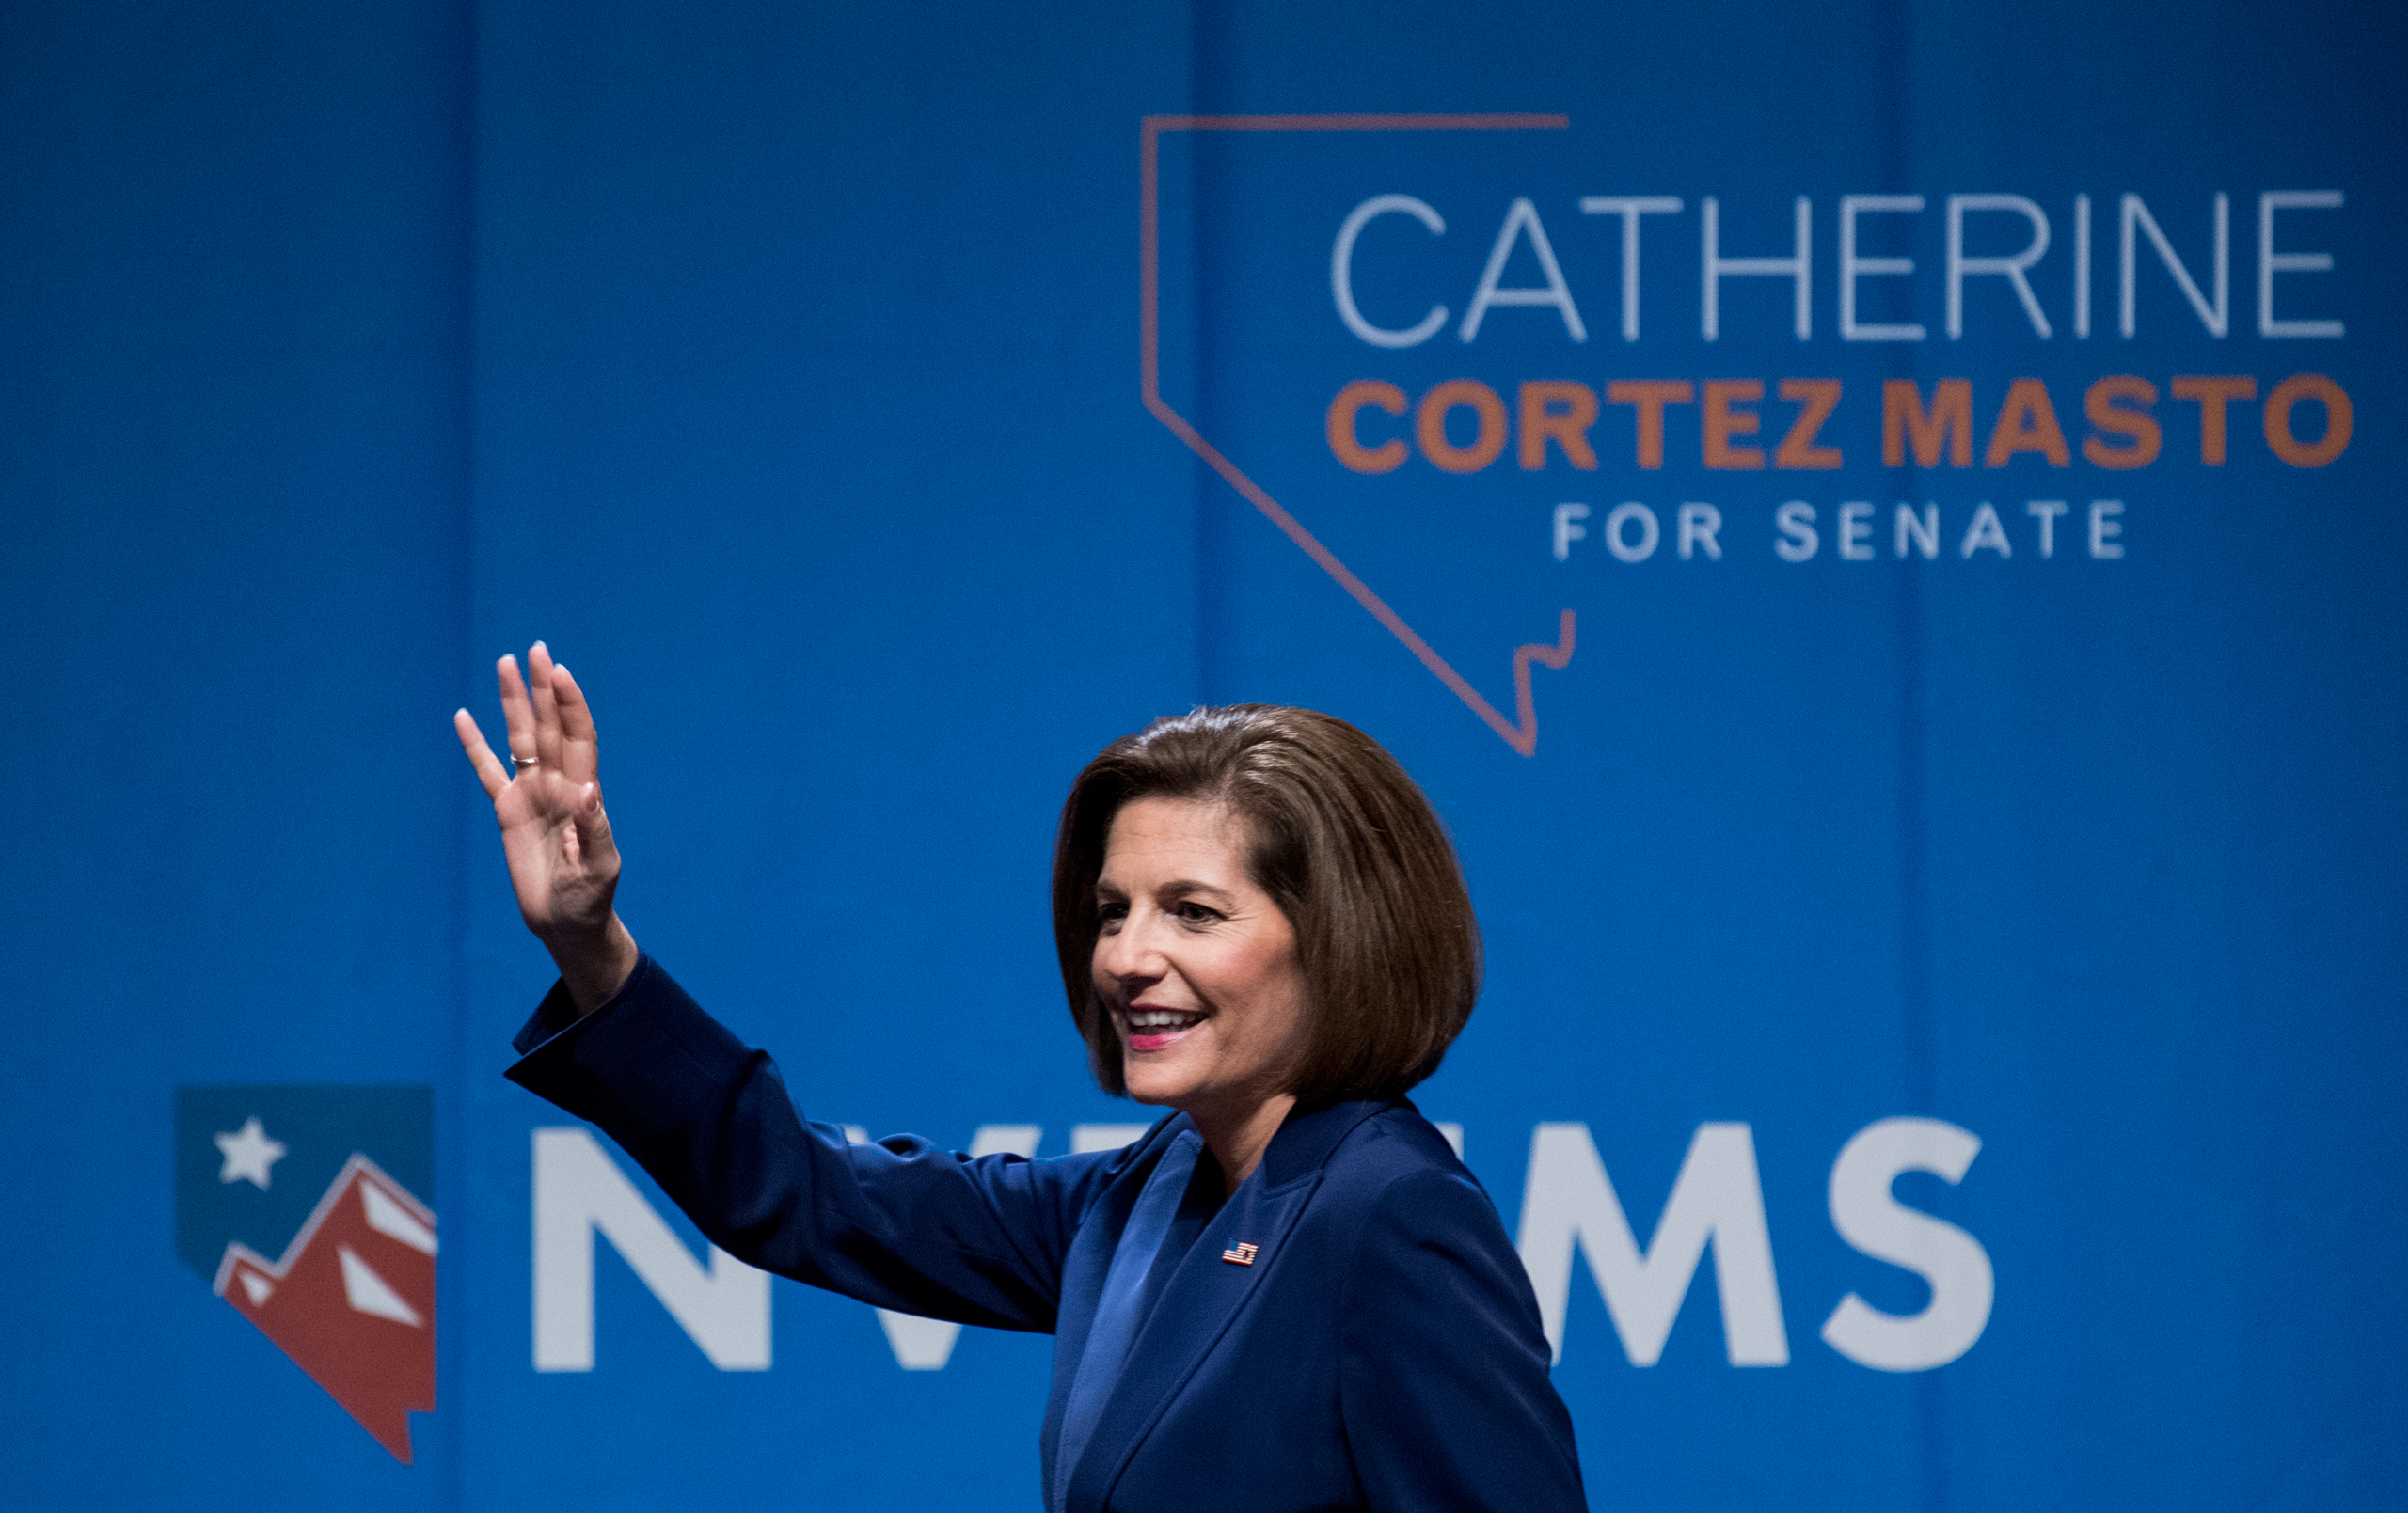 Catherine Cortez Masto, Democratic candidate for U.S. Senate from Nevada, delivers her victory speech at the Nevada Democrats' election night watch party at the Aria Hotel & Resort in Las Vegas  on Nov. 8, 2016.